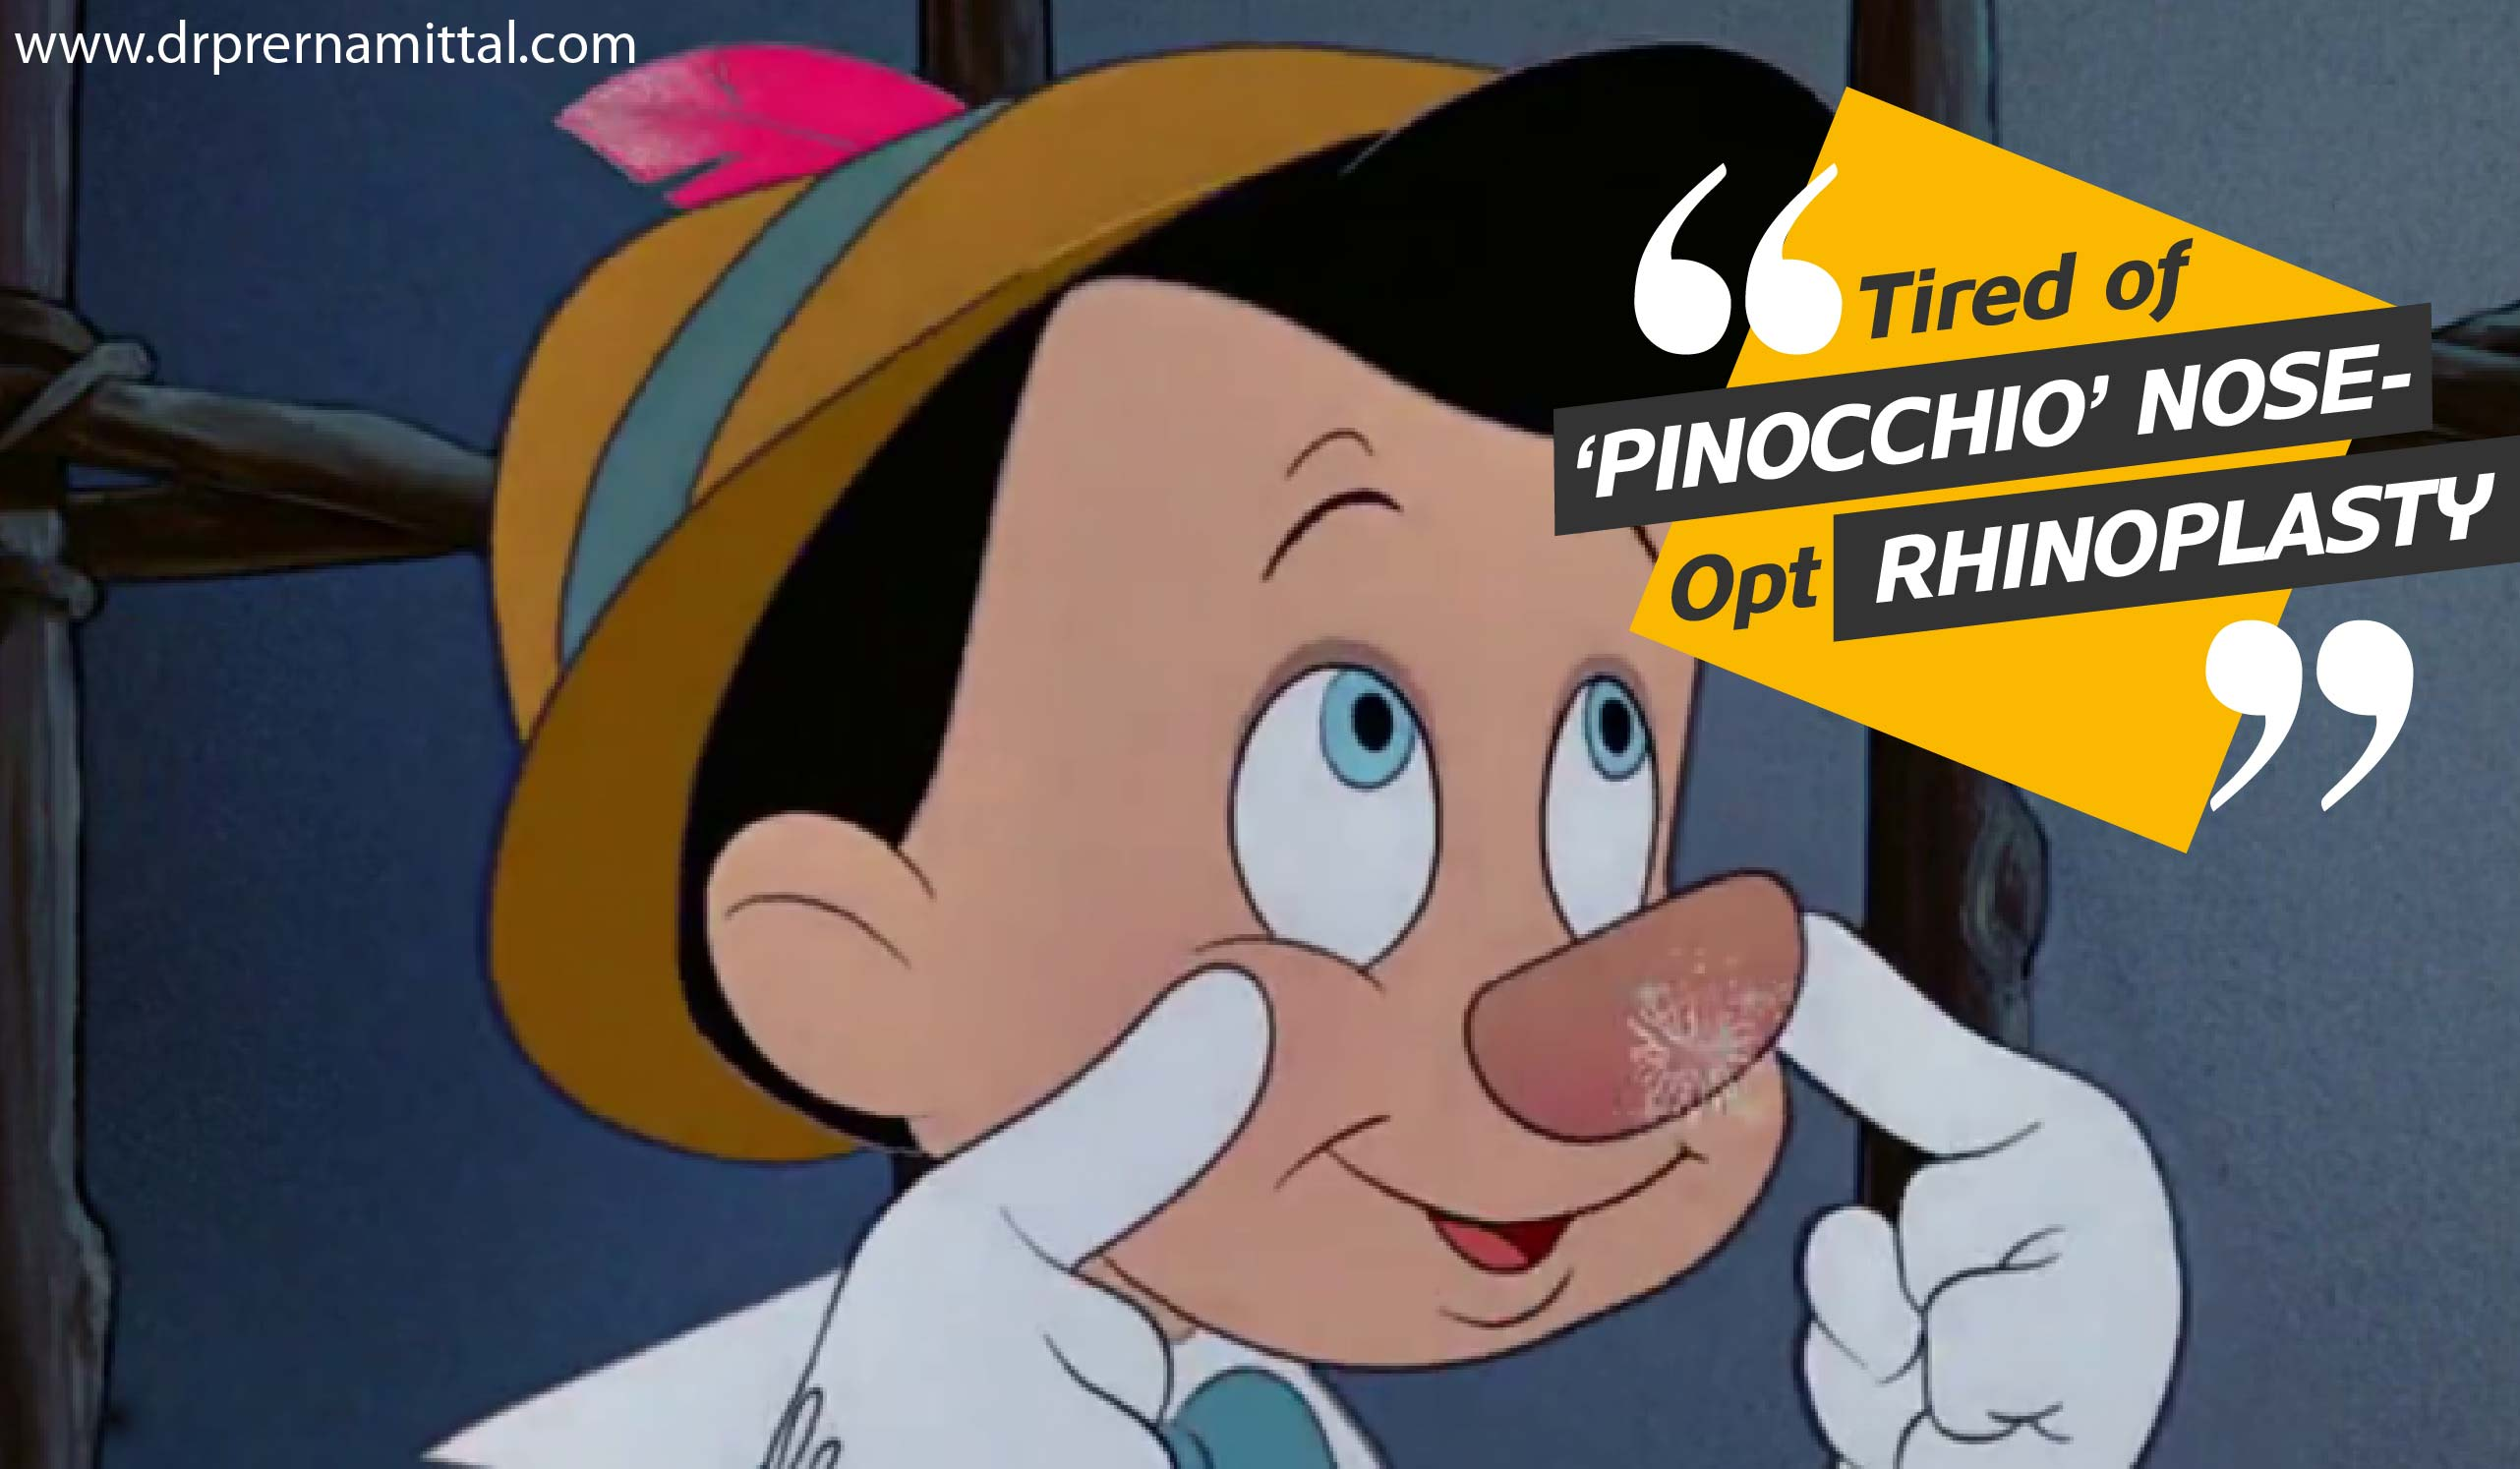 Pinocchio Nose- Rhinoplasty: The New-Age Nose